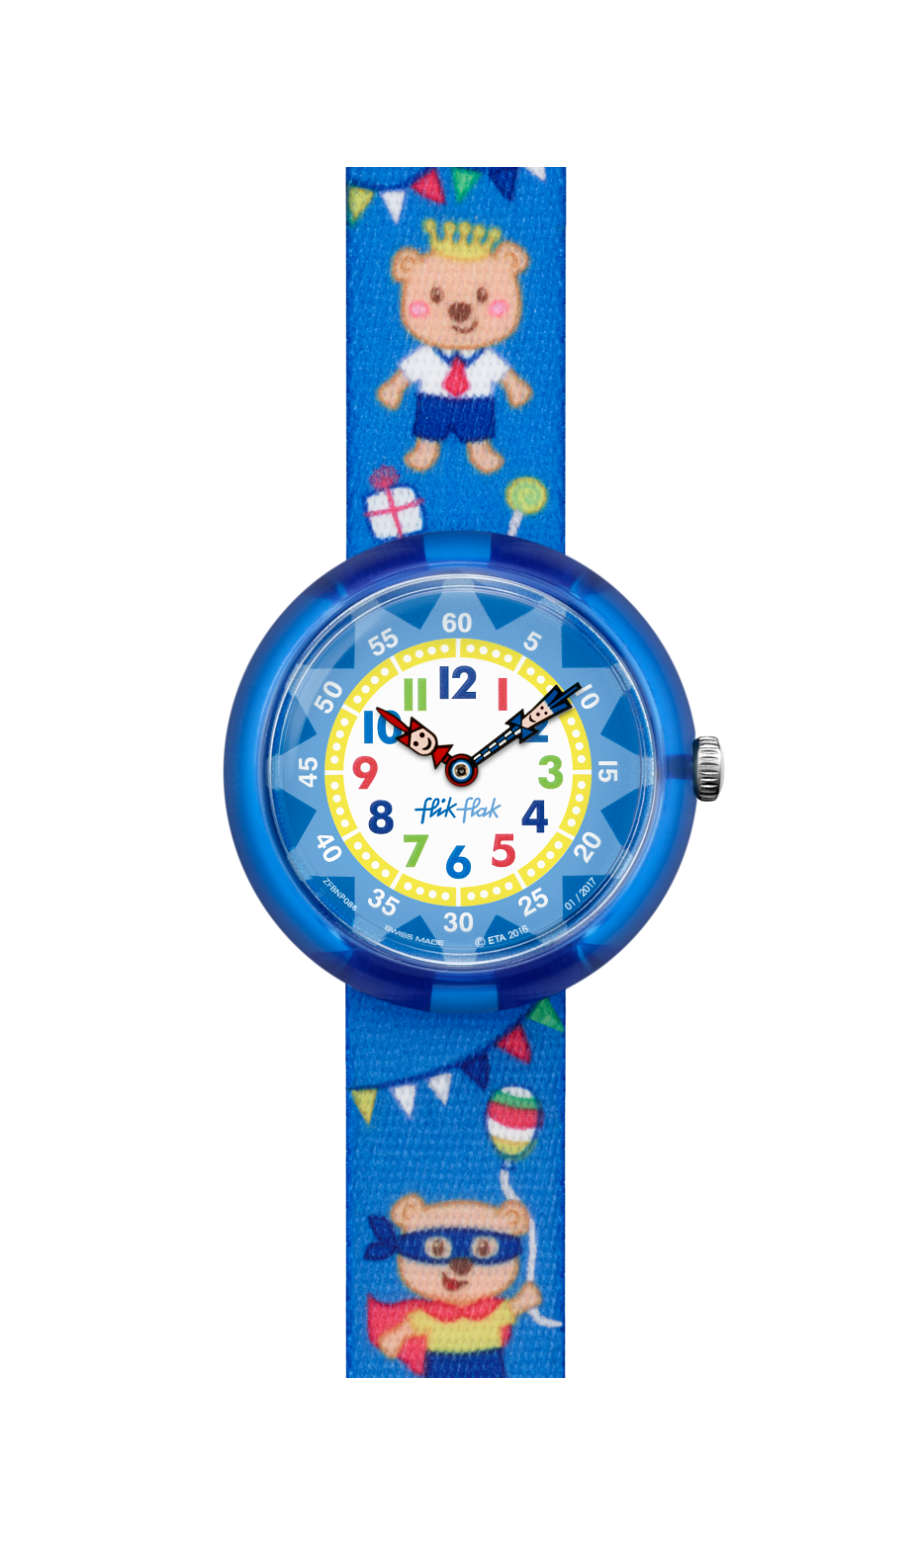 Swatch - COOL PARTY - 1